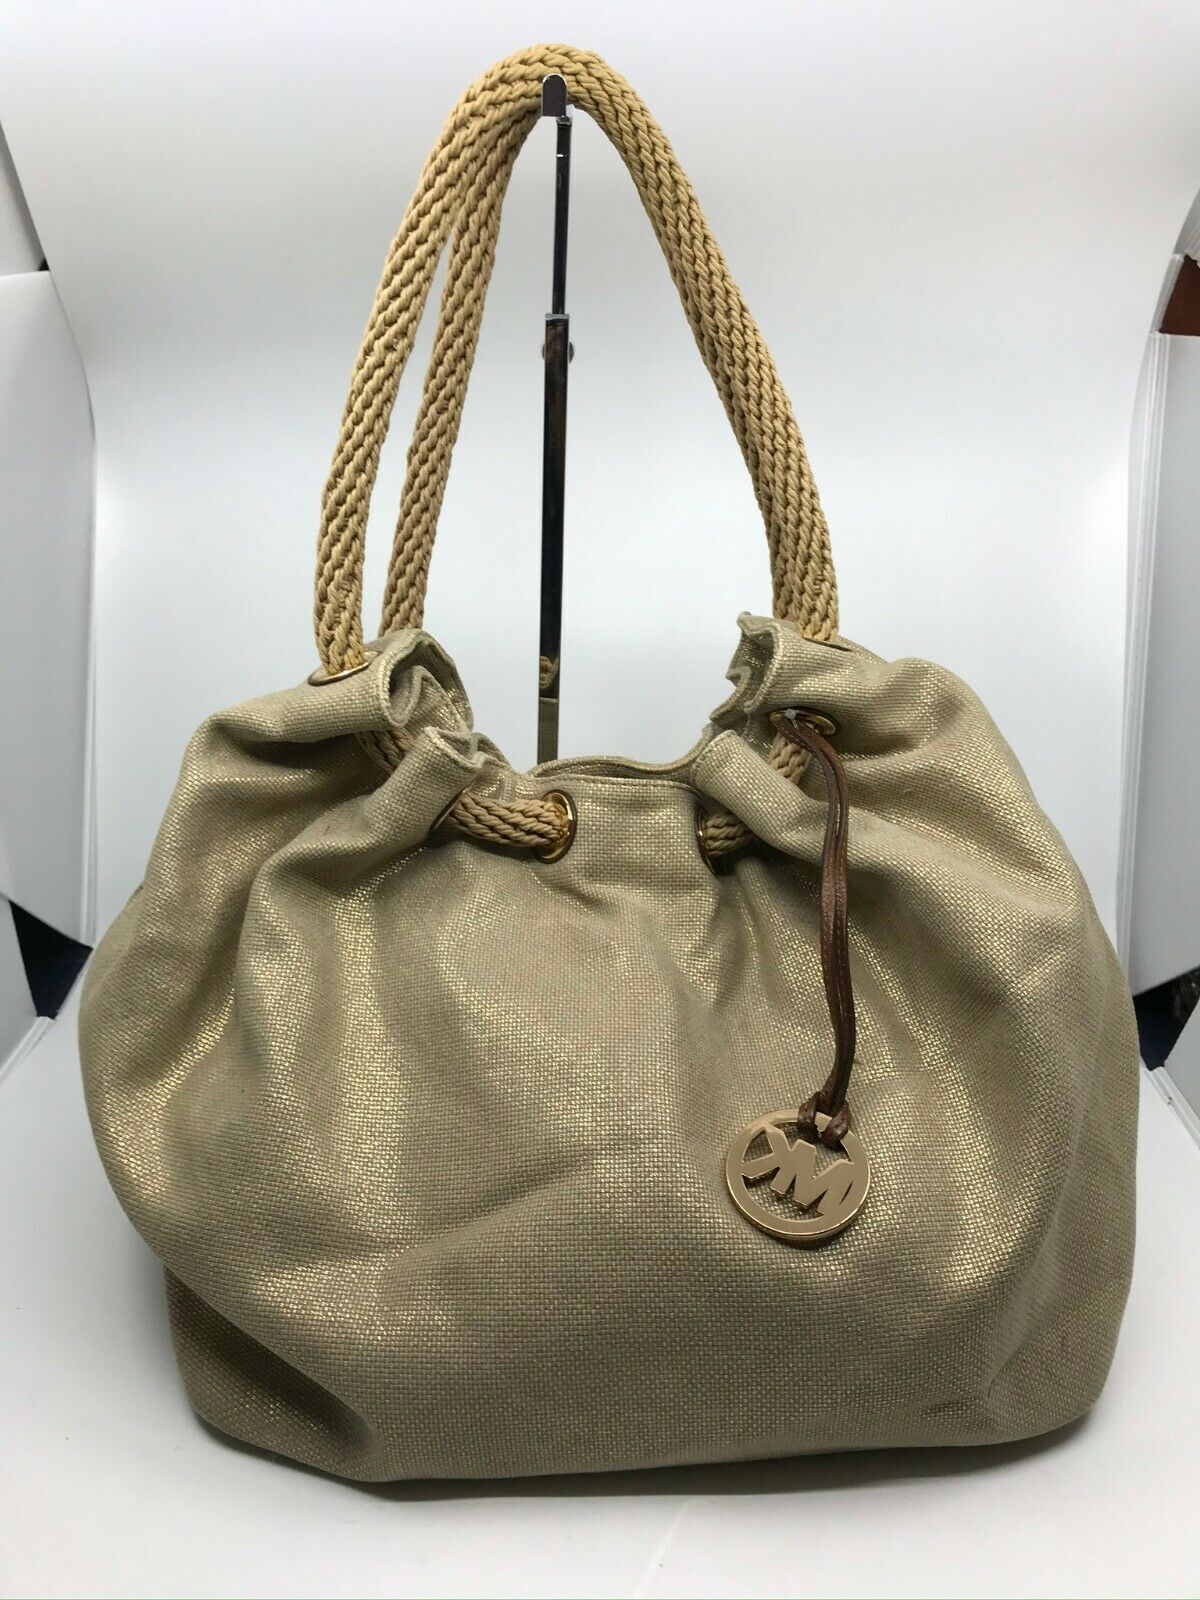 Michael Kors Large Woven Straw Fabric Tote Bag